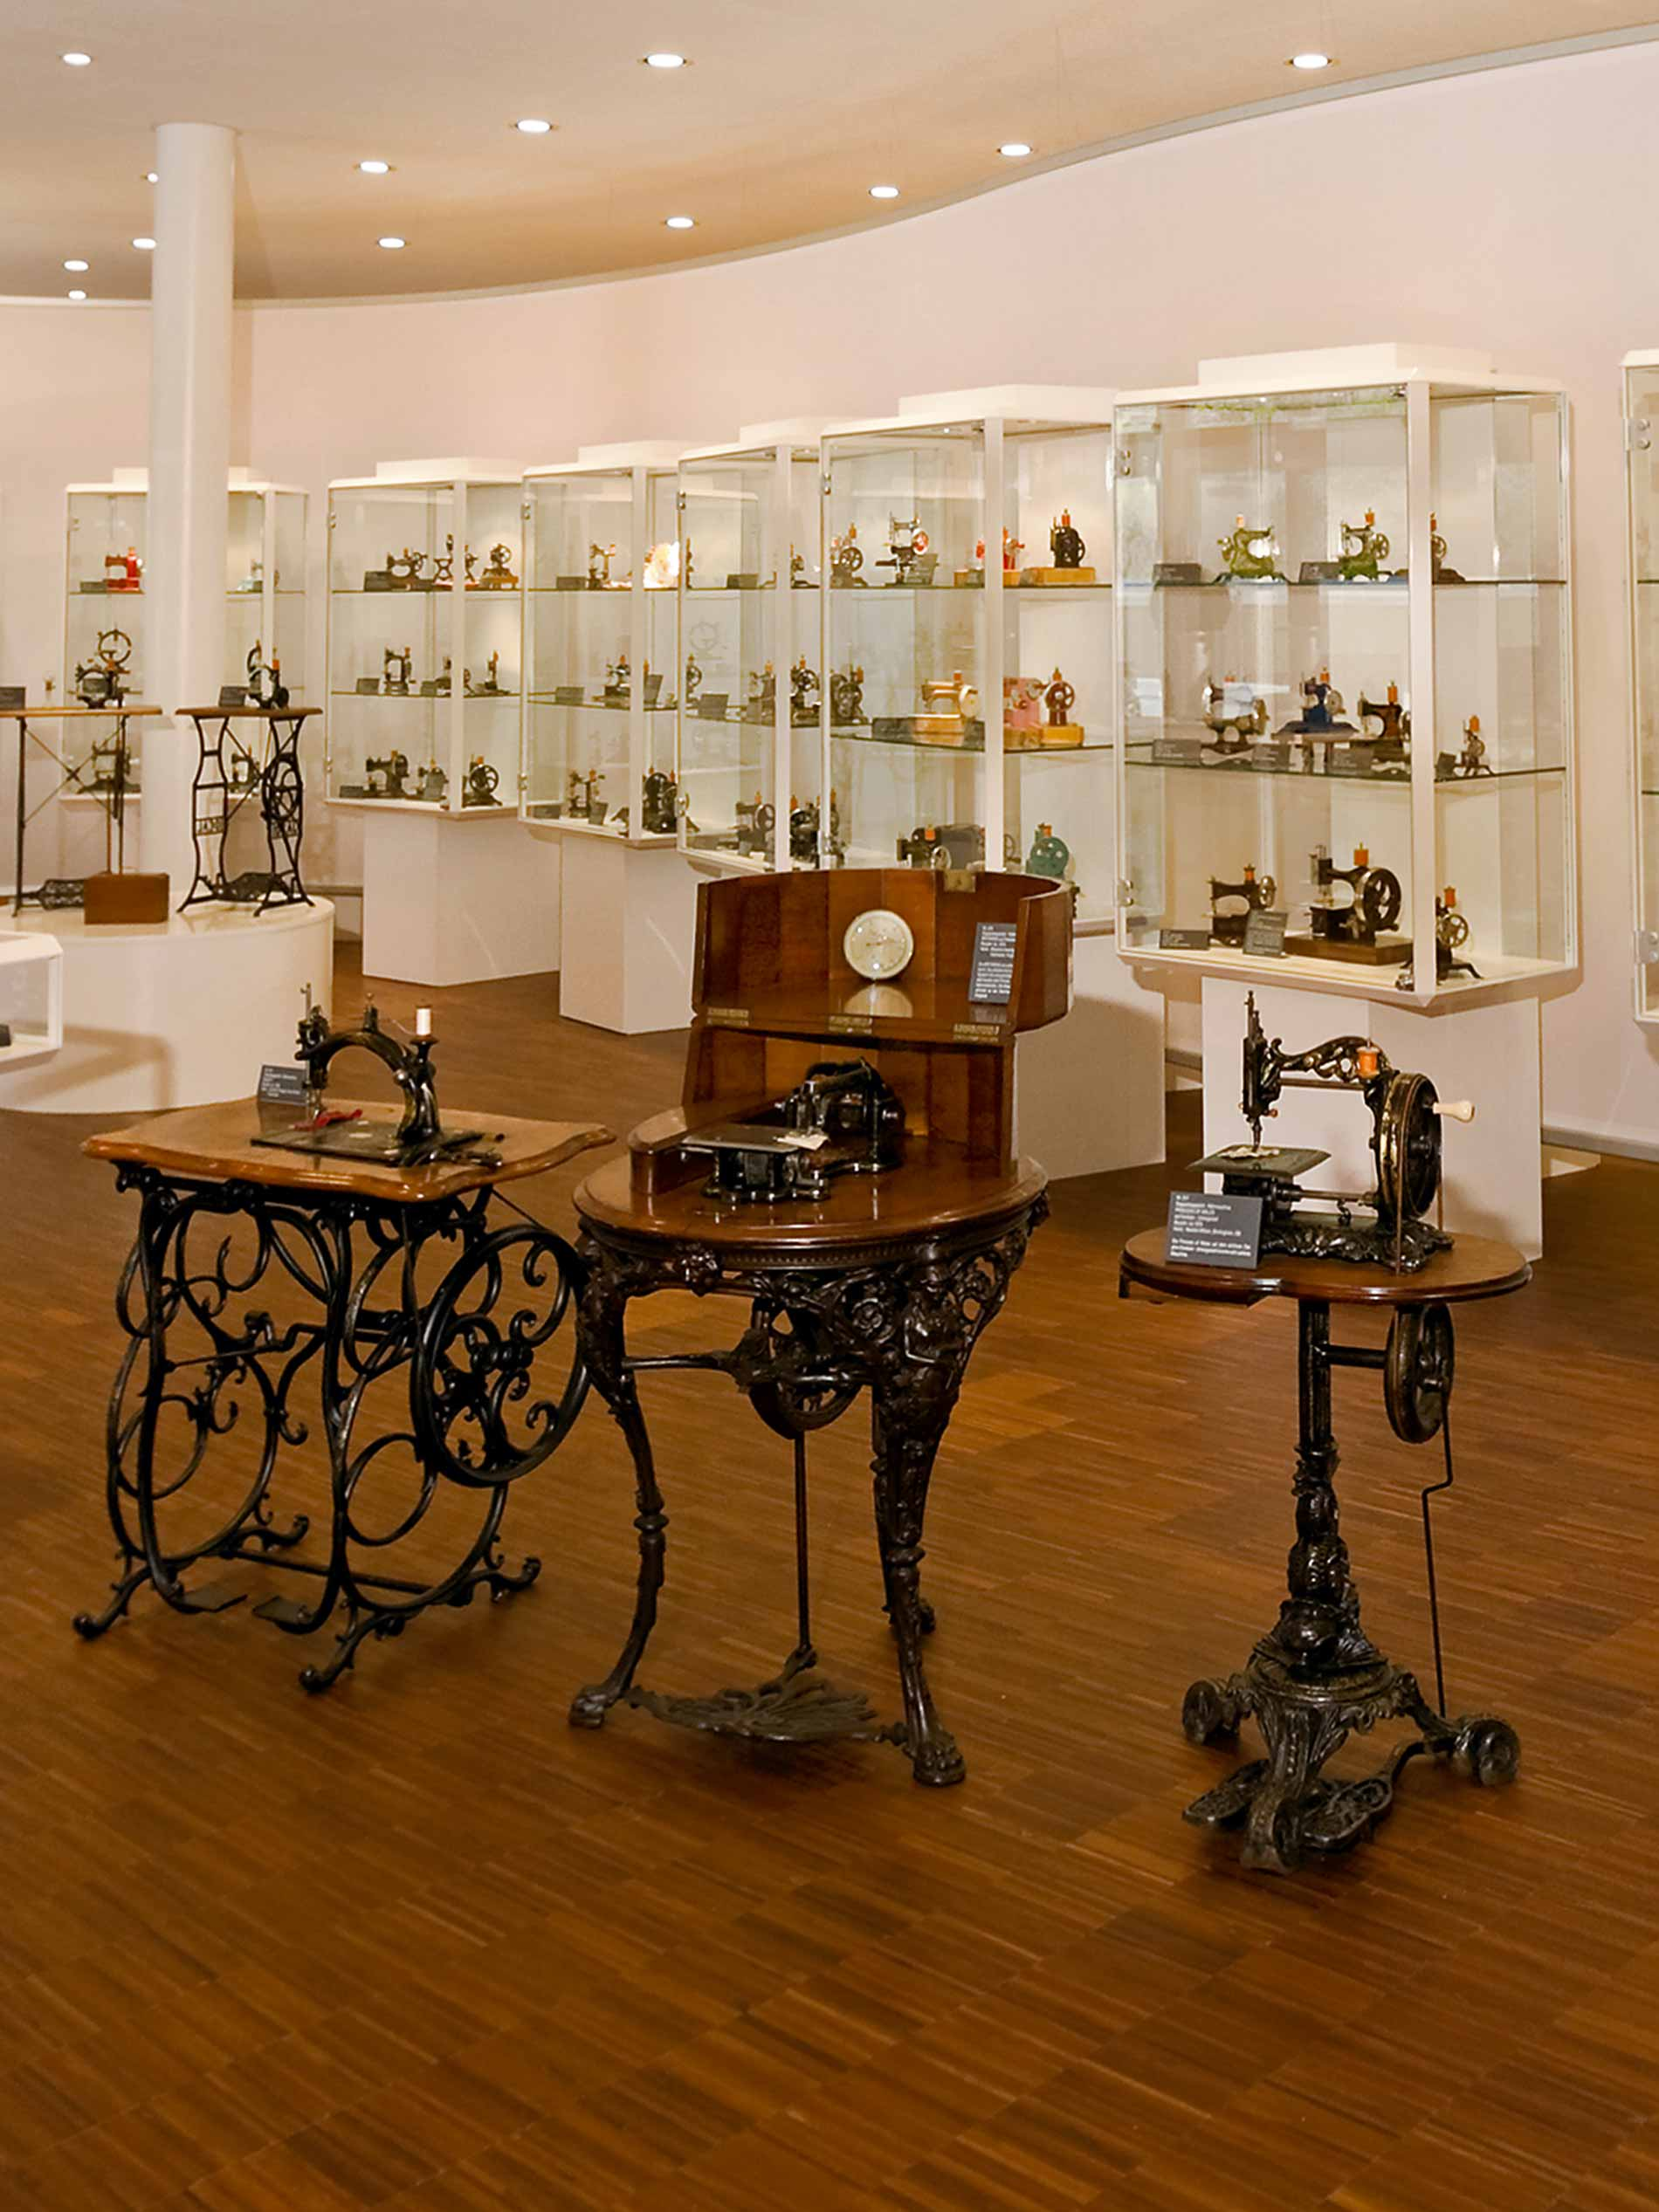 interior of the museum, three historic sewing machines in the foreground and multiple glass vitrines with exhibition pieces in the background | mey®